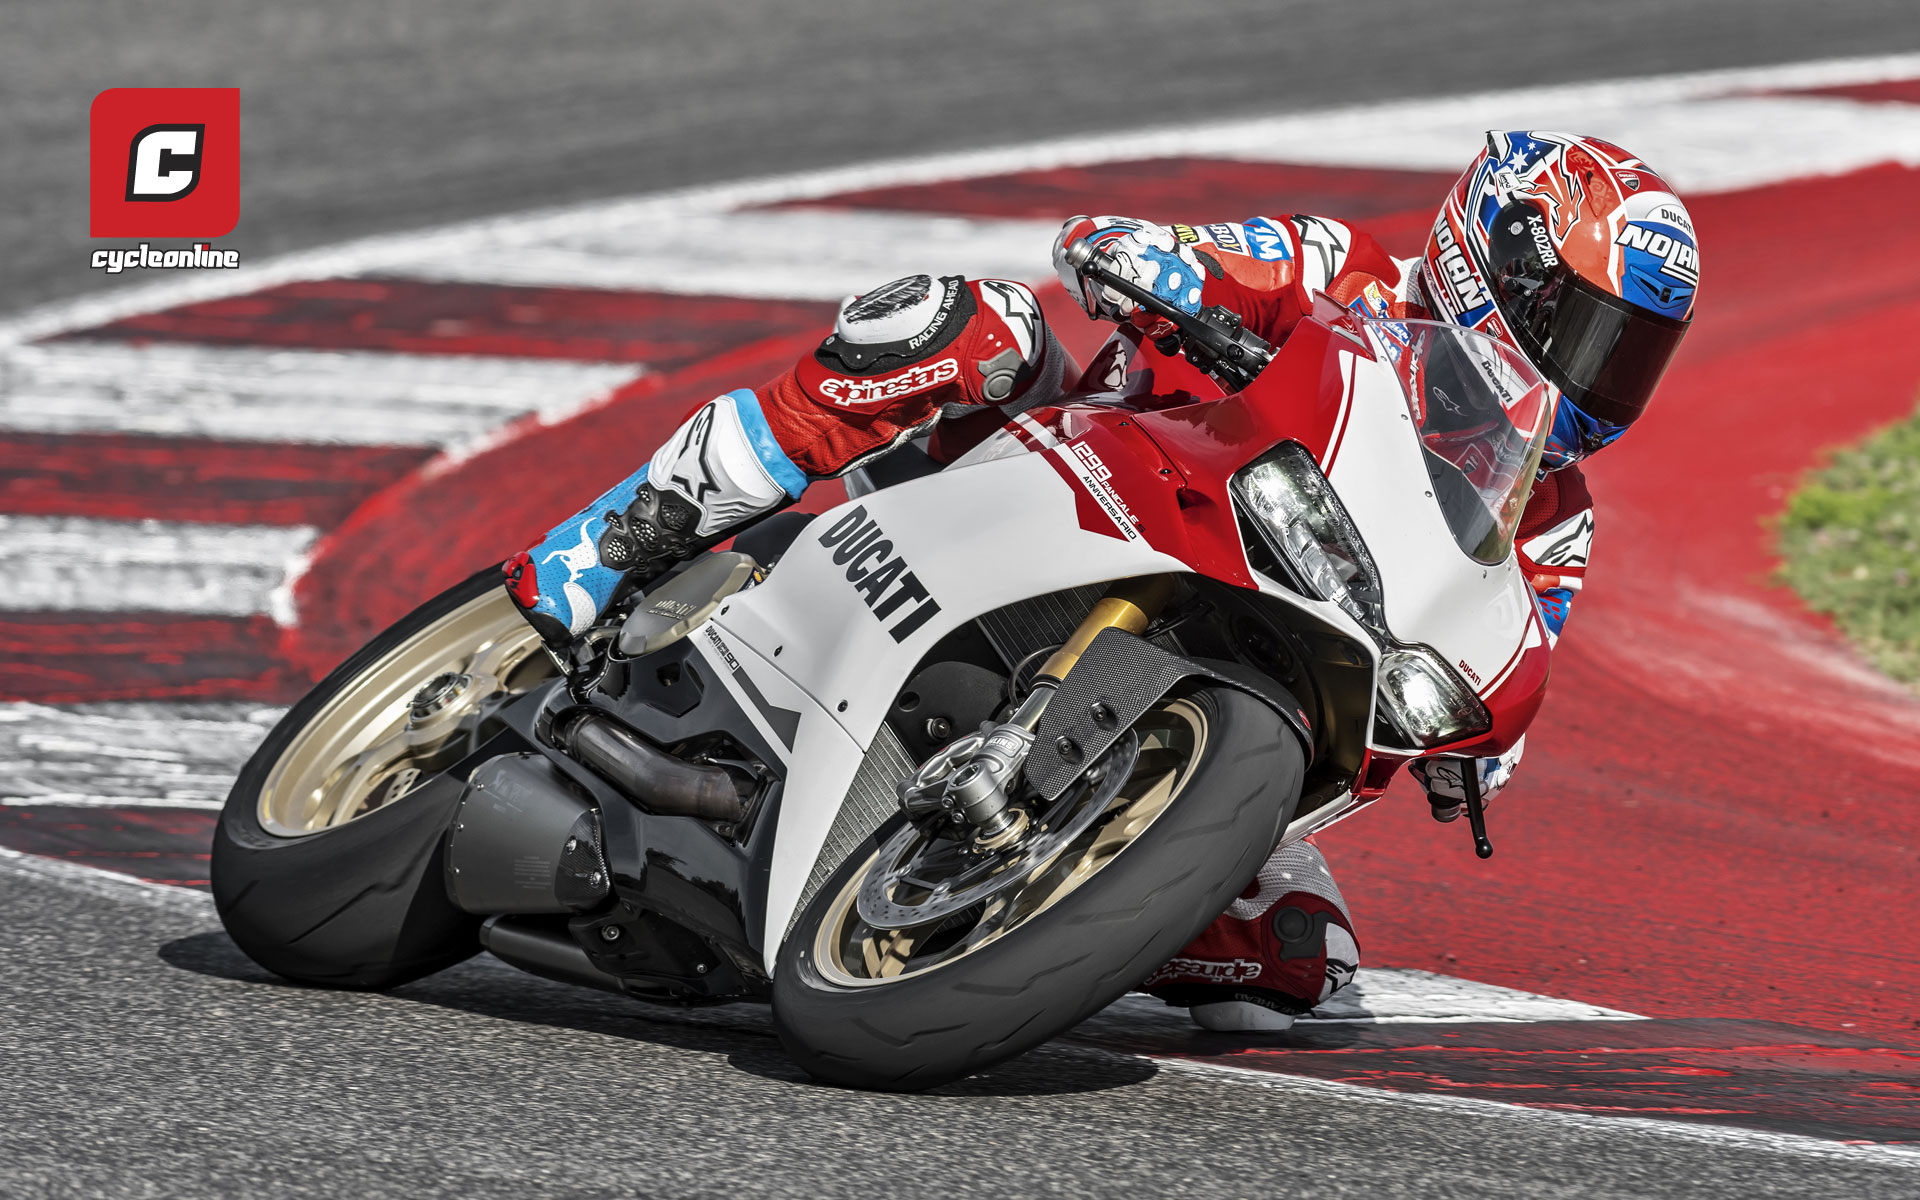 The Brand New Ducati 1299 Panigale S Anniversario Was Introduced At World Week As Australias Casey Stoner Debuted It On Track Among Festivities